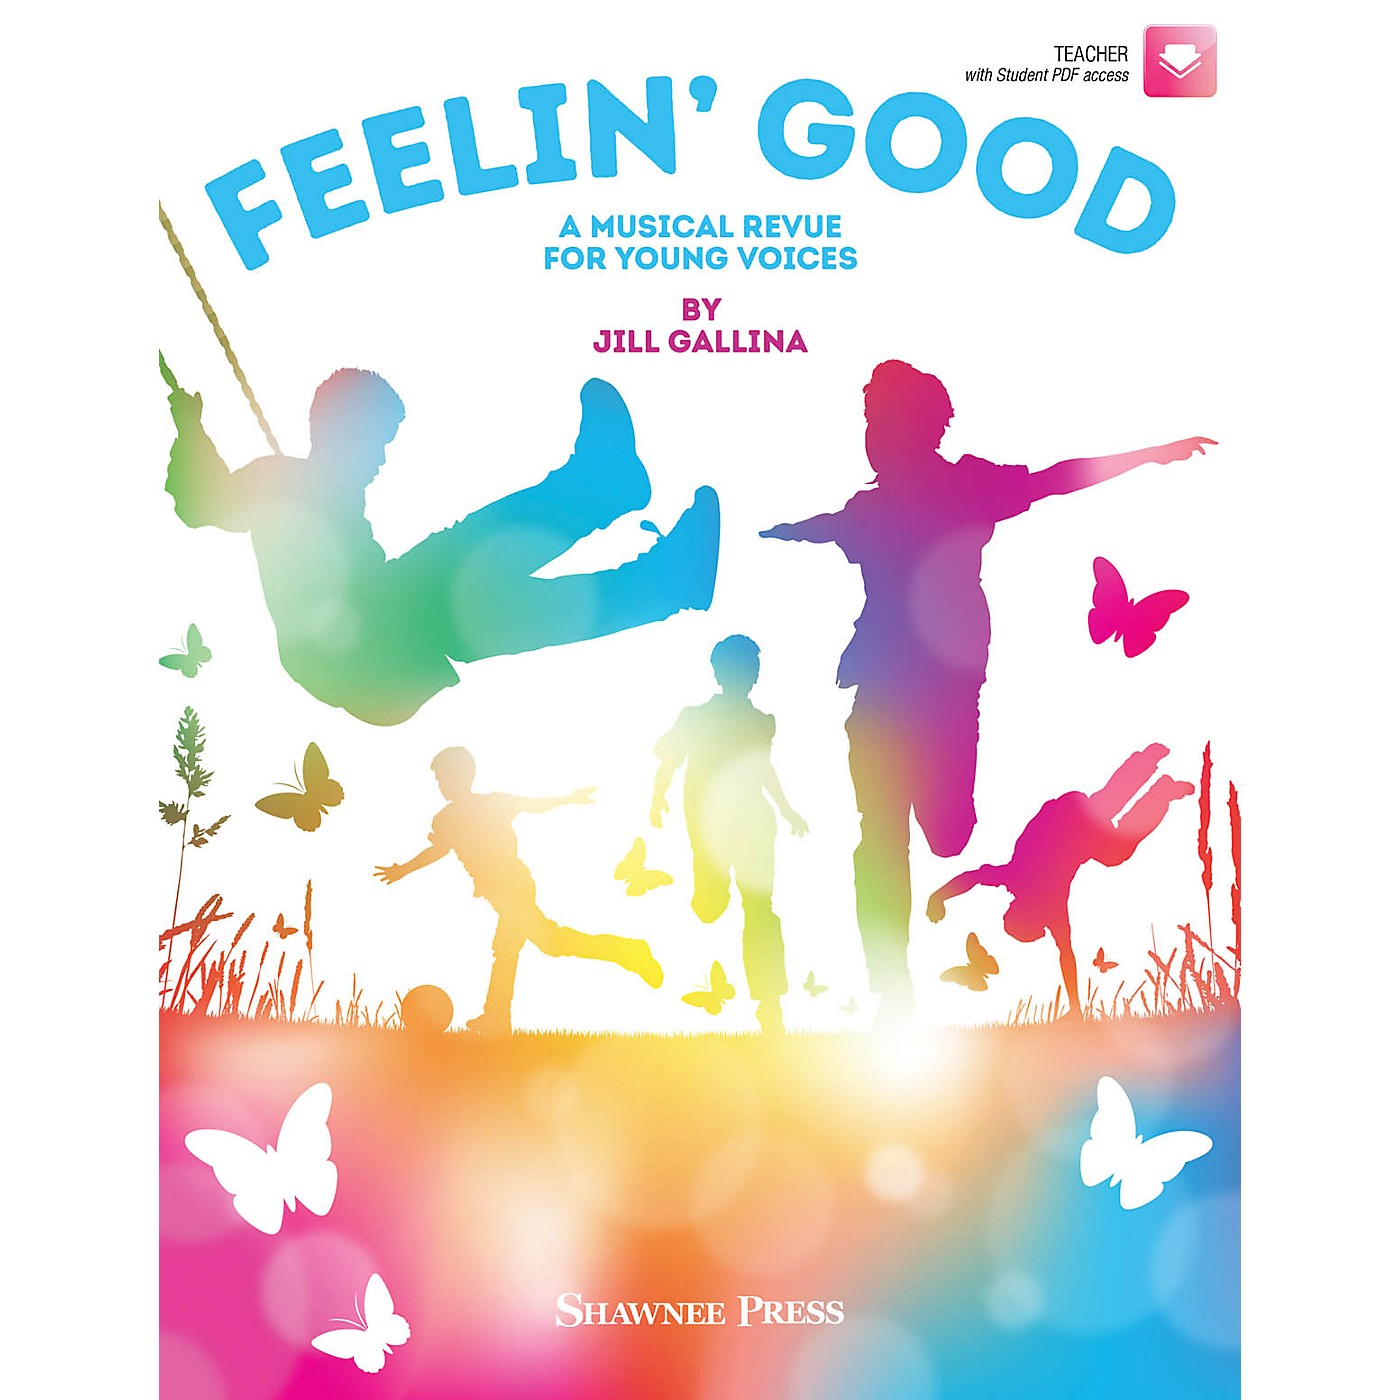 Hal Leonard Feelin' Good (A Musical Revue for Young Voices) PERF KIT WITH AUDIO DOWNLOAD Composed by Jill Gallina thumbnail